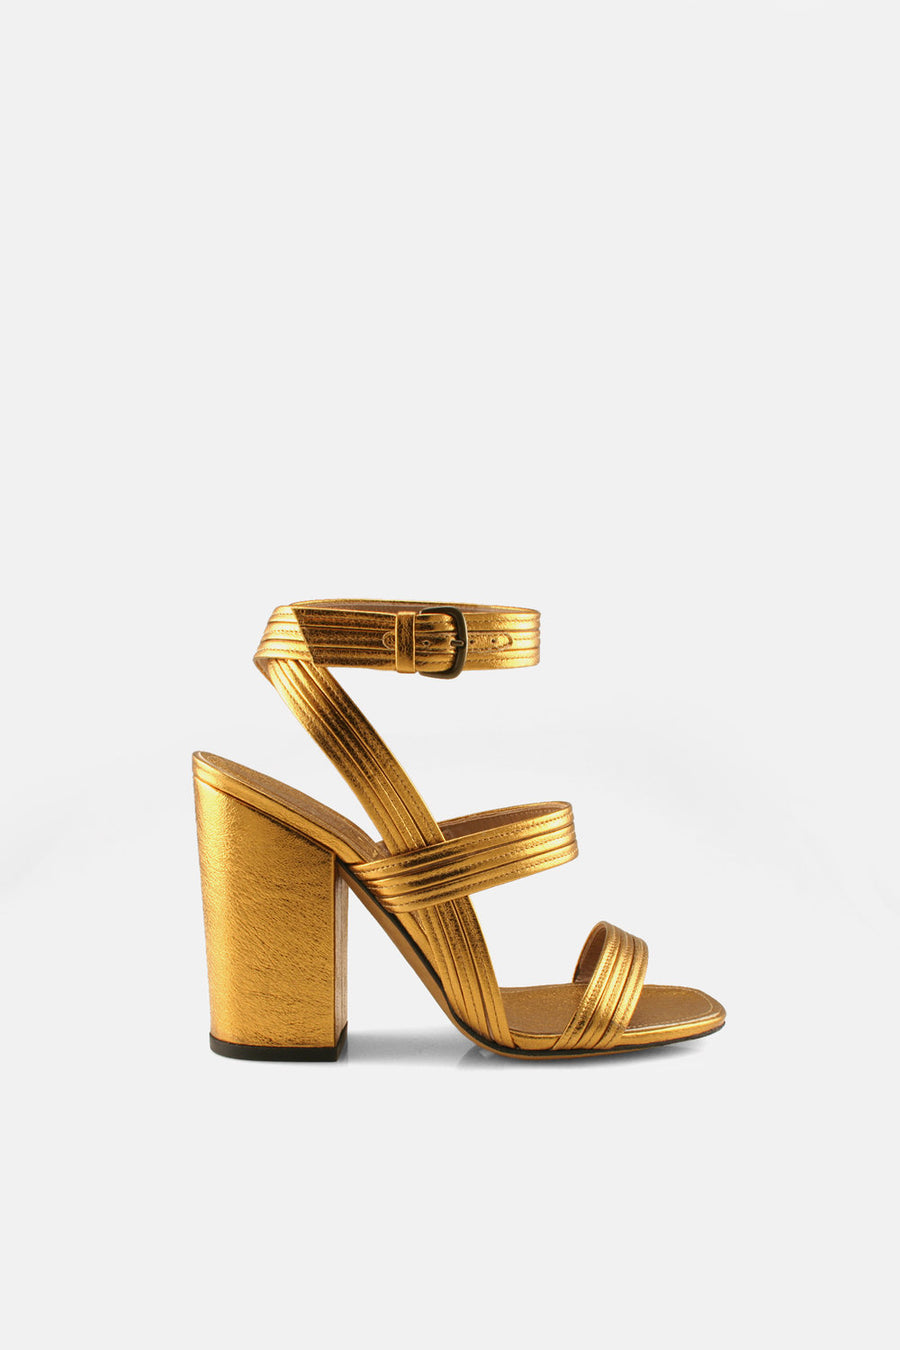 Stitched Mignon Block Heel Sandal Gold Nappa.